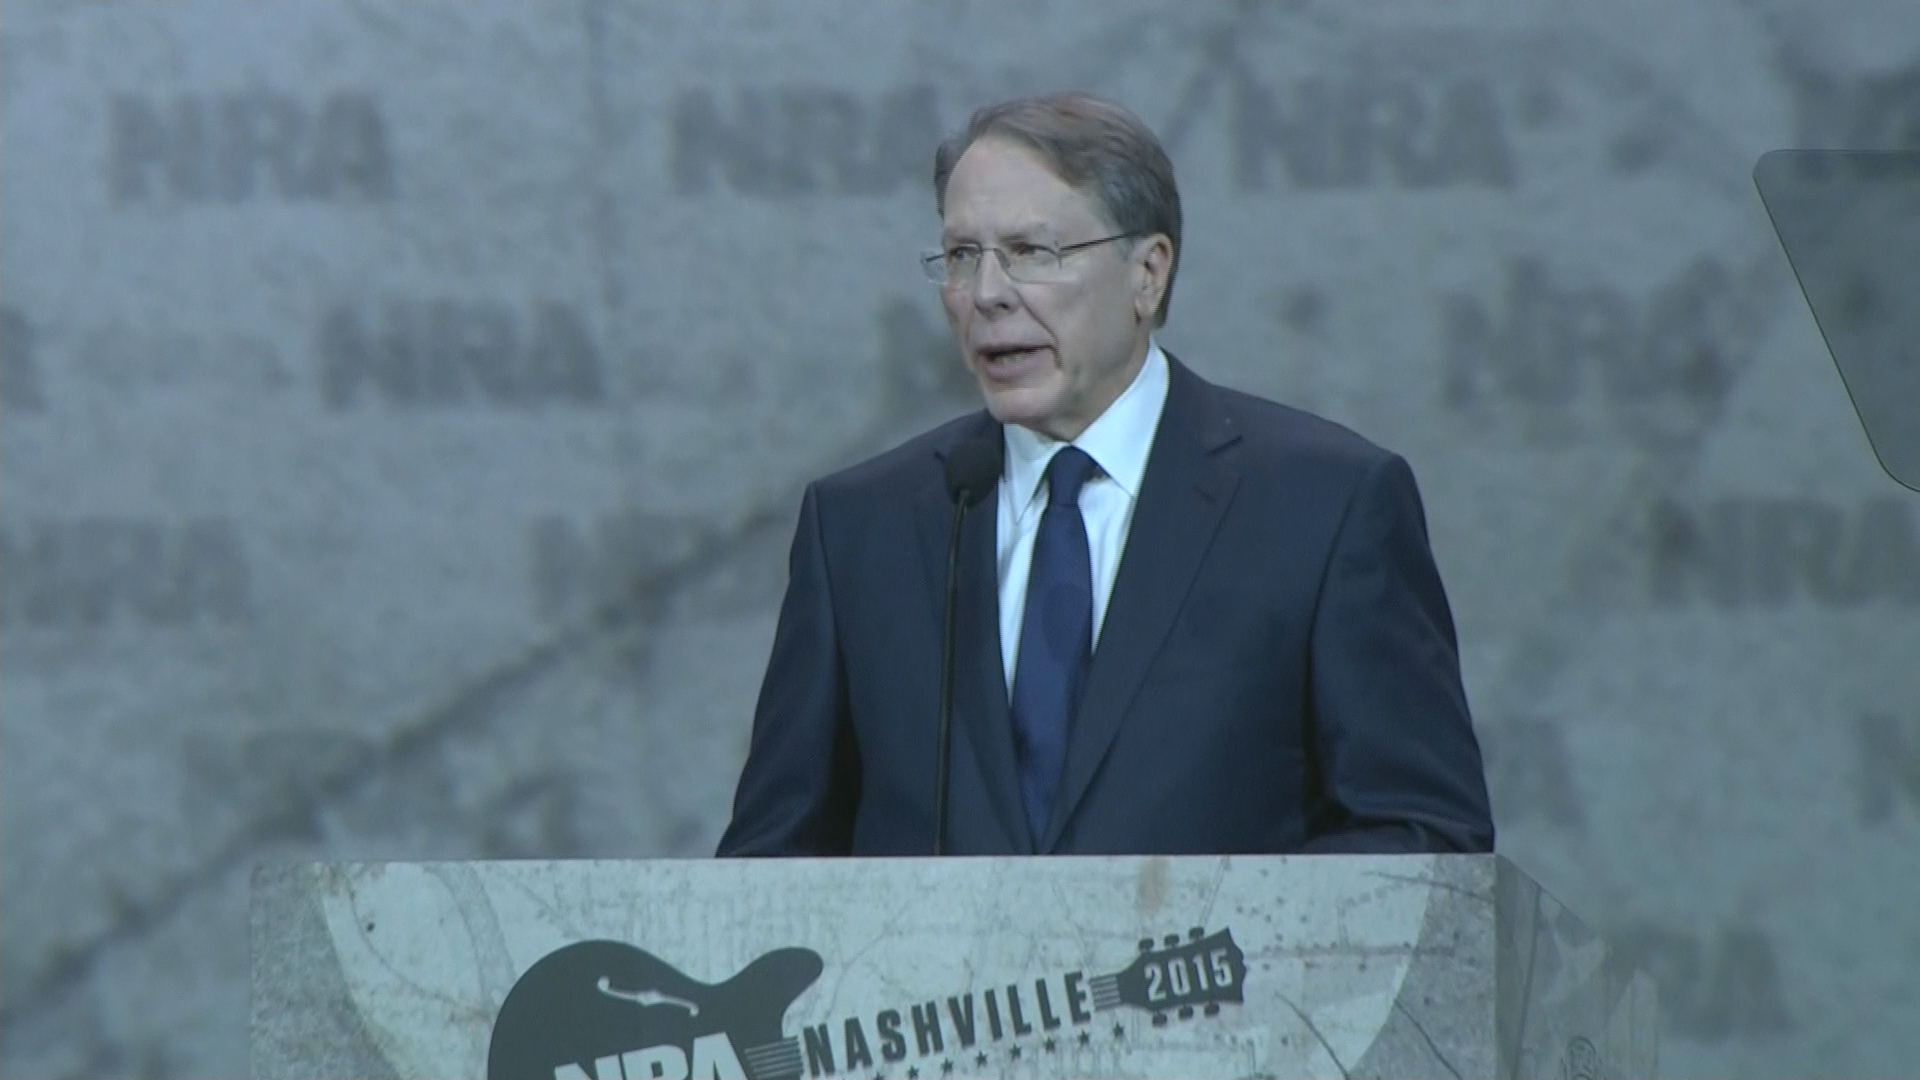 NRA chief rails against Hillary Clinton